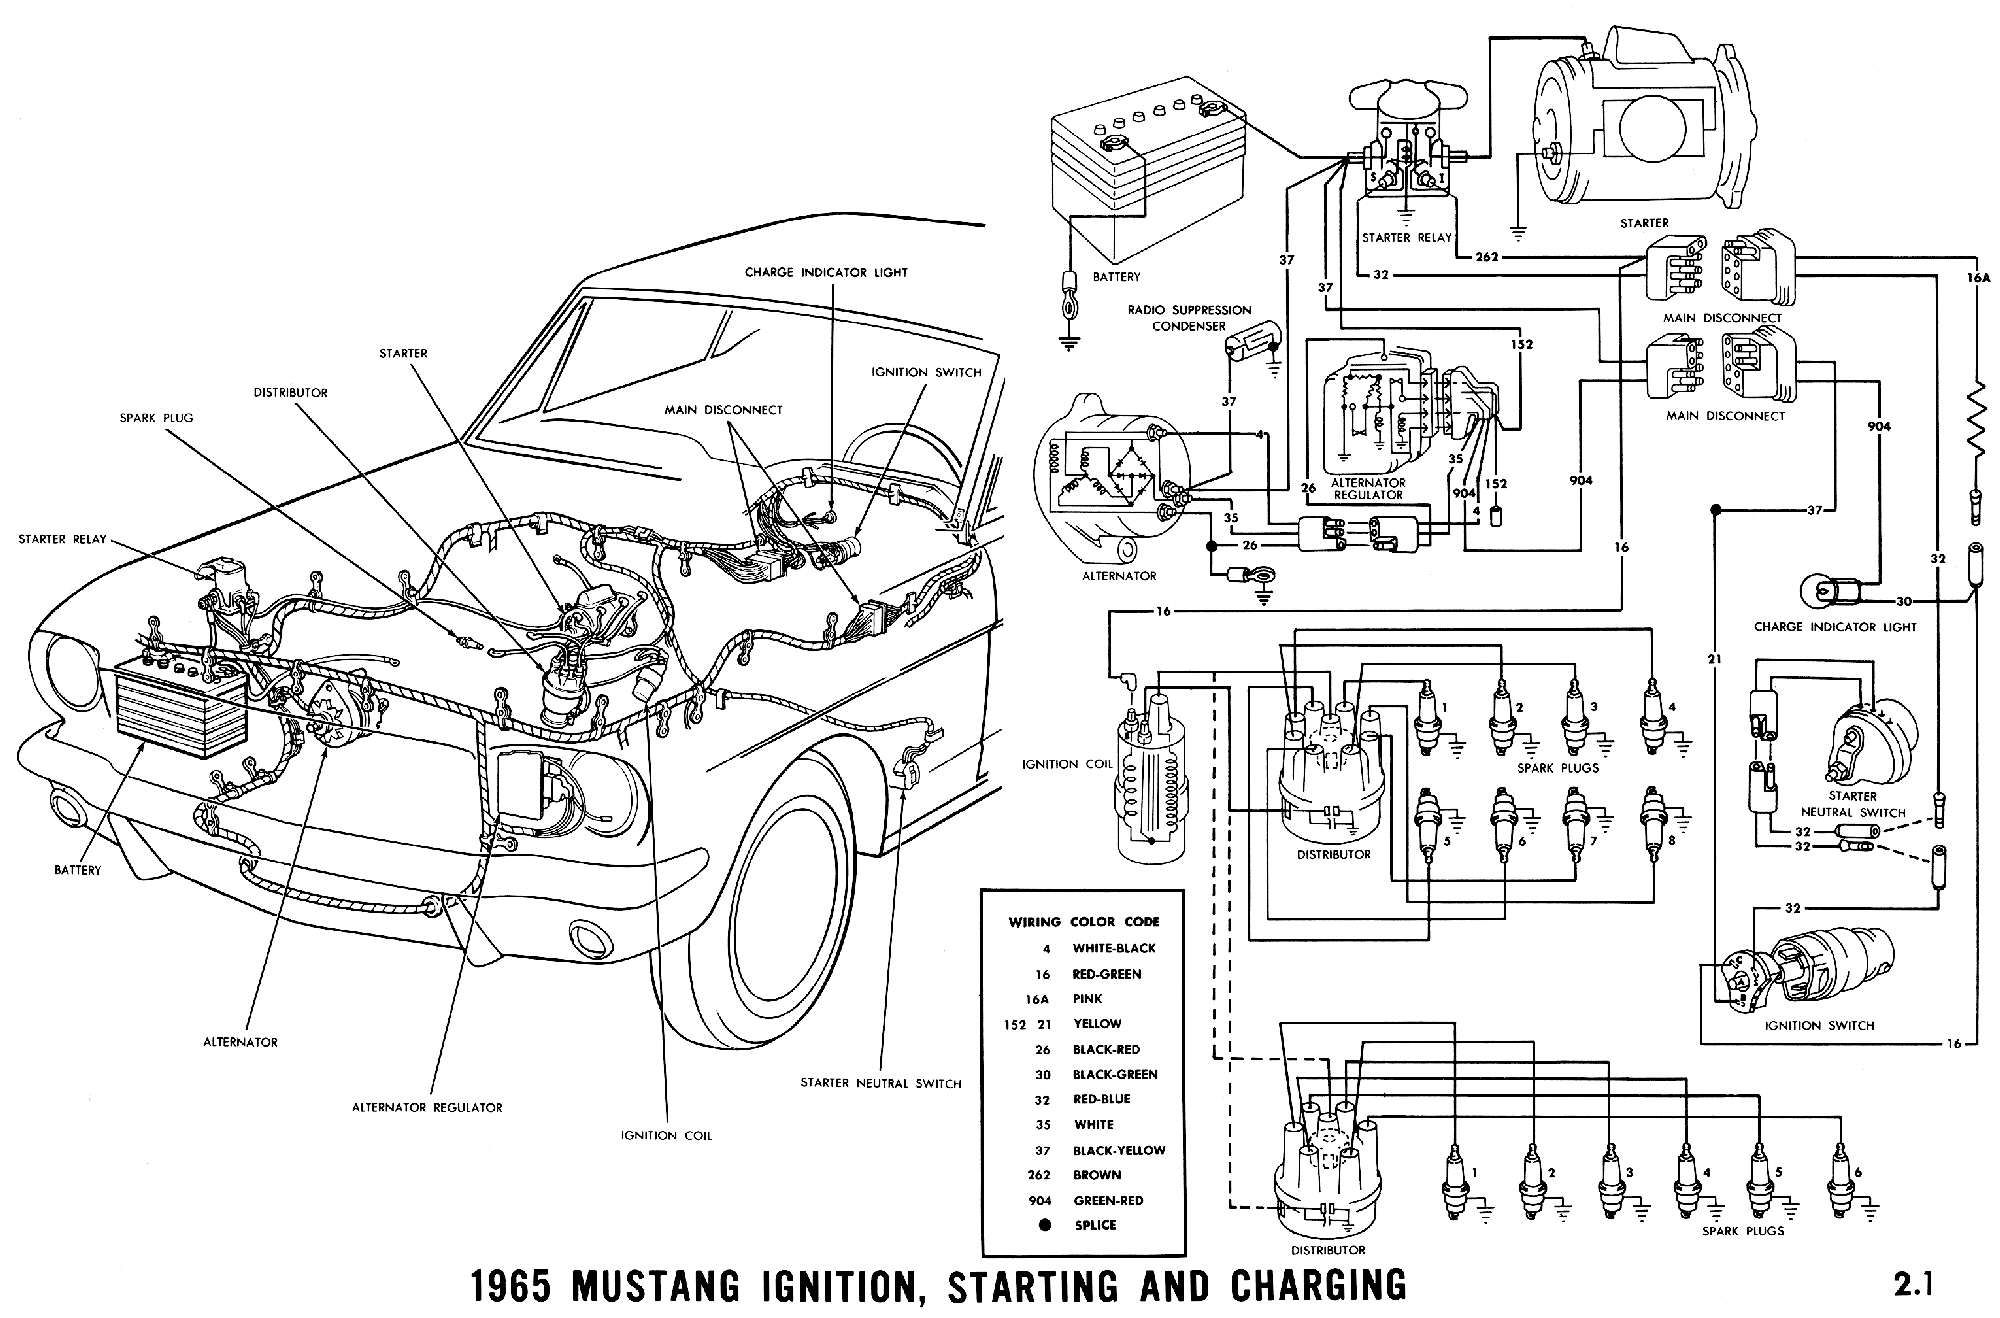 2b4c8d3809962afcbebfb7e8a60704ce 1965 mustang wiring diagrams average joe restoration mustang Ford Alternator Wiring Diagram at crackthecode.co